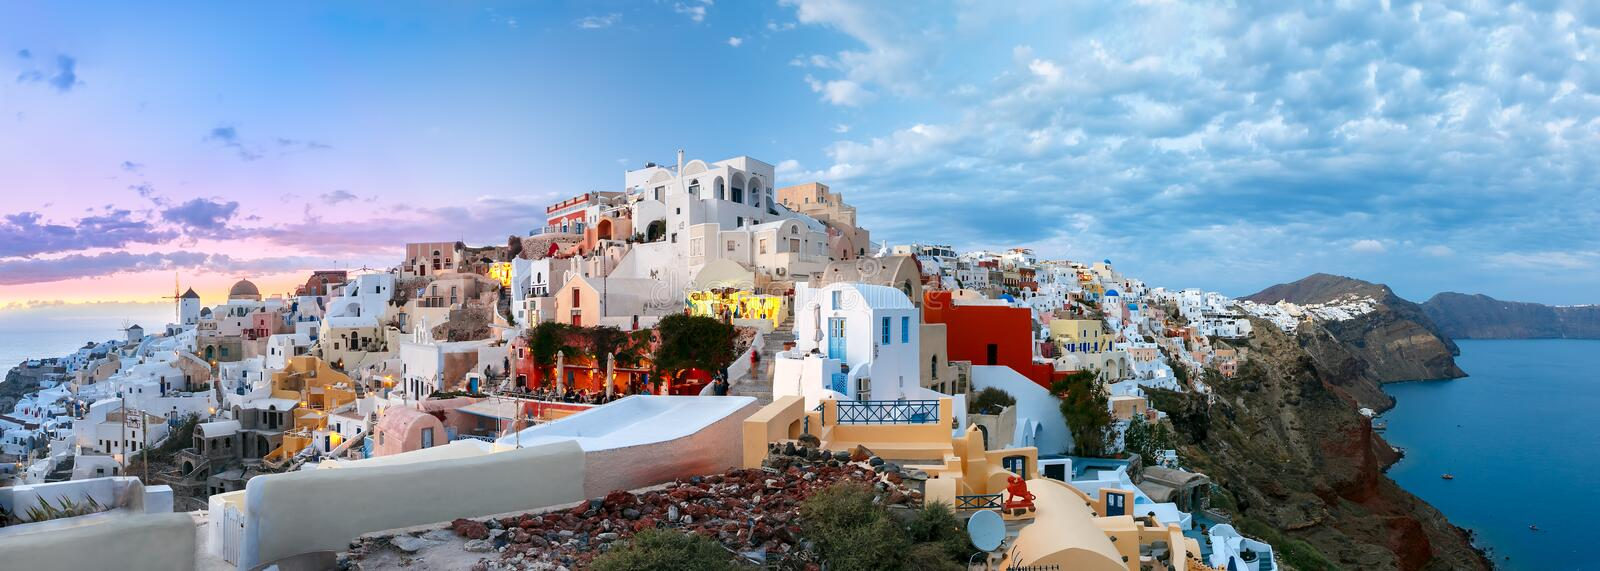 Panorama of Oia or Ia at sunset, Santorini, Greece royalty free stock photo